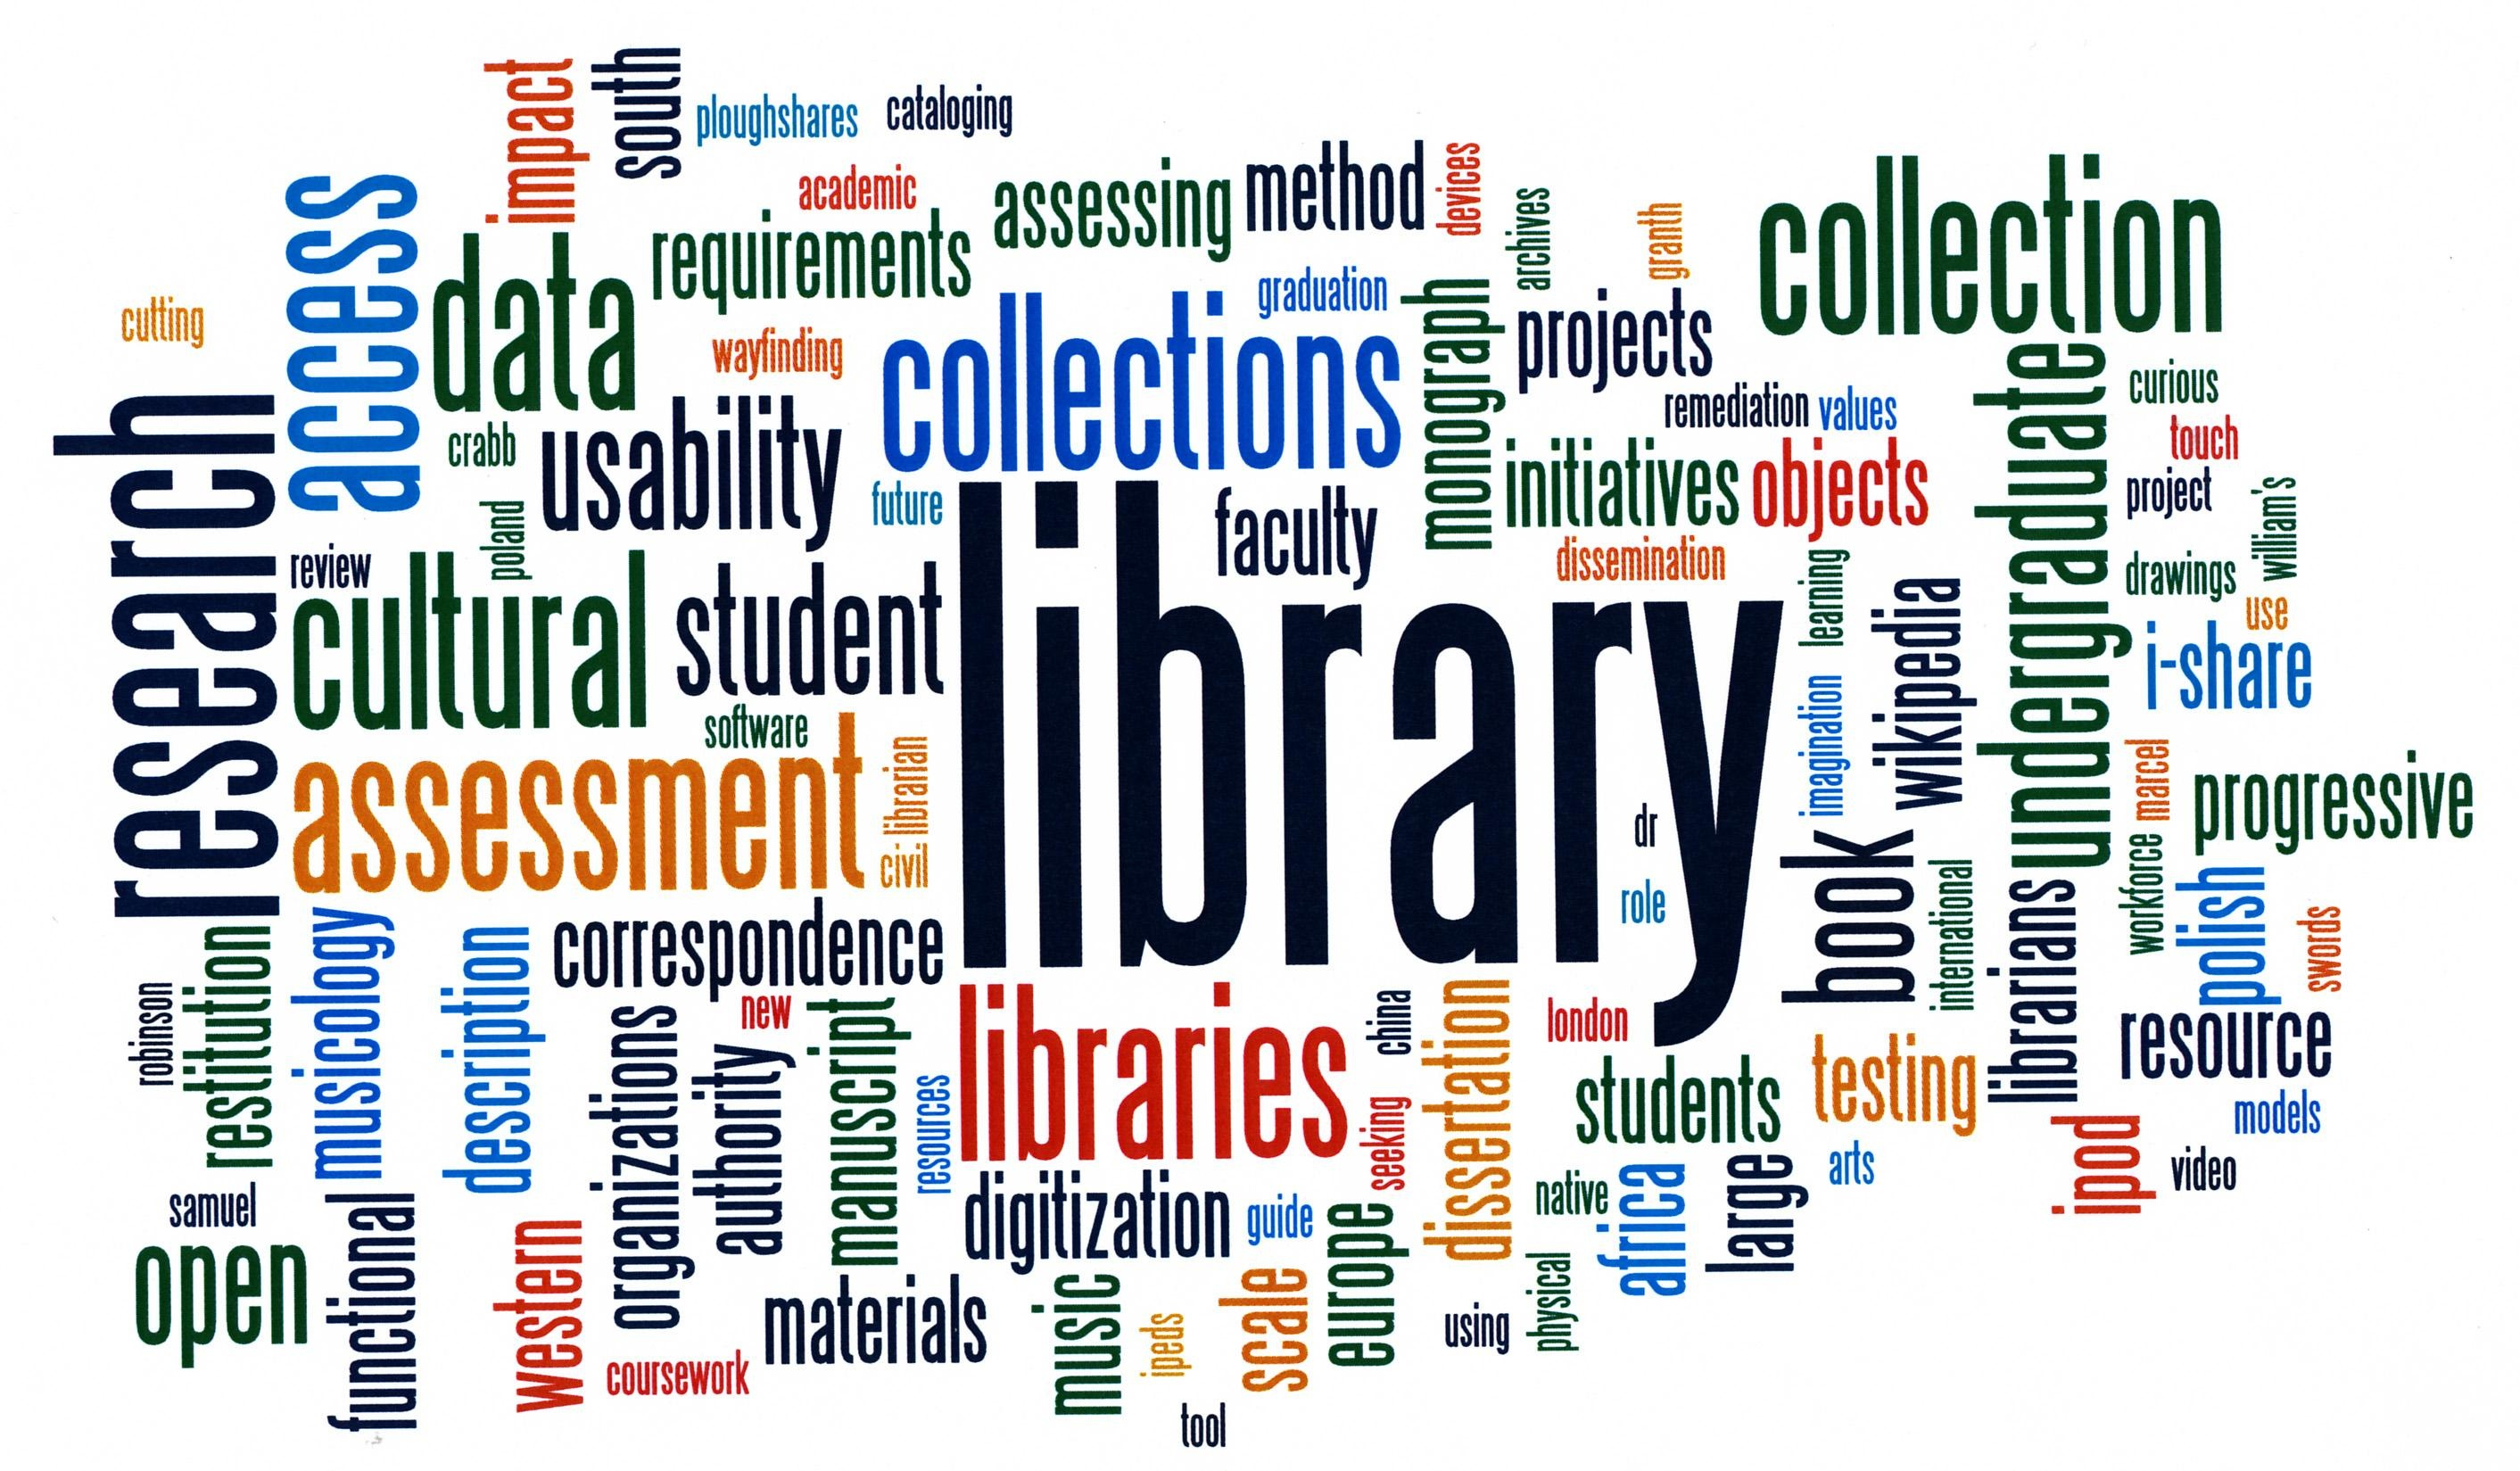 research word cloud image